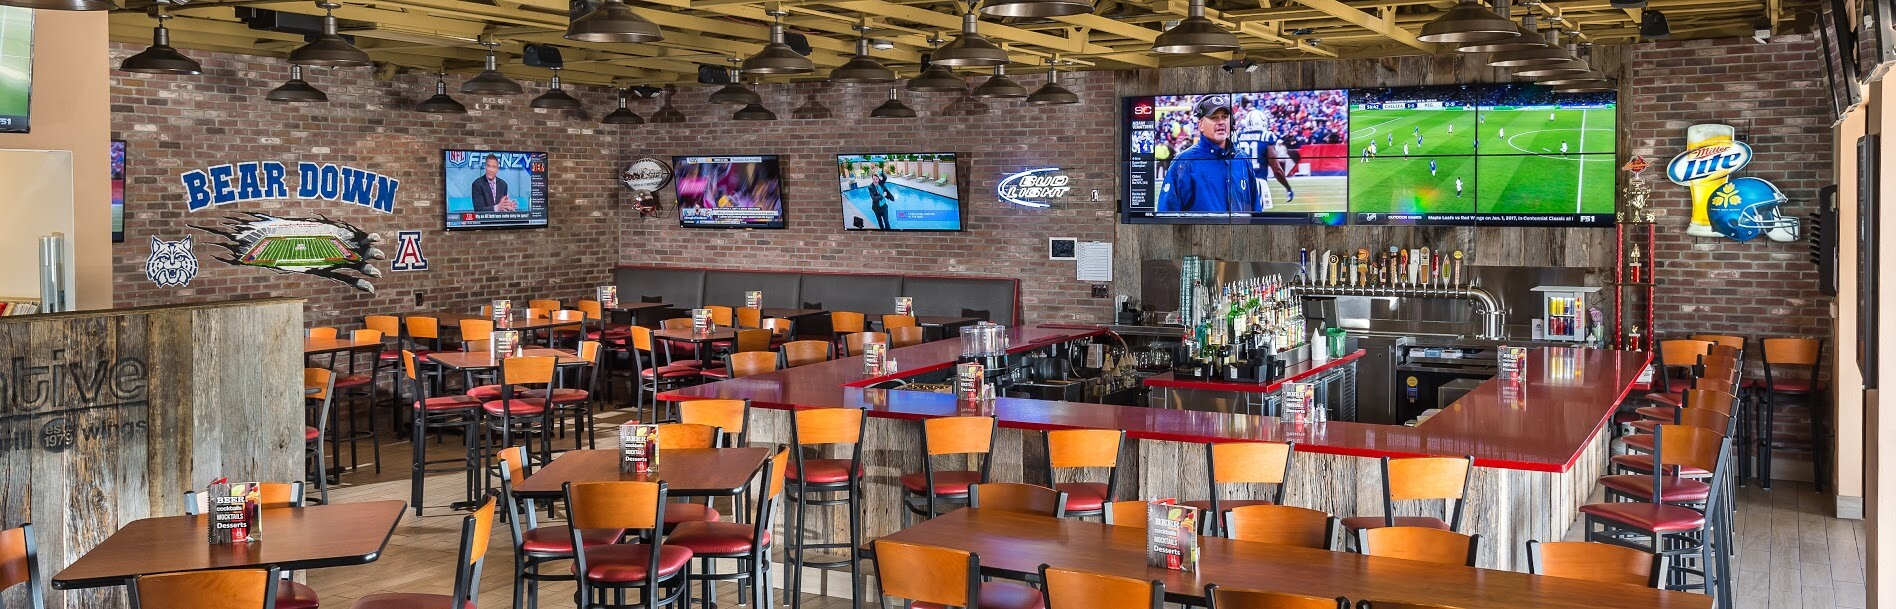 Native Grill and Wings Franchising - Franchise Support